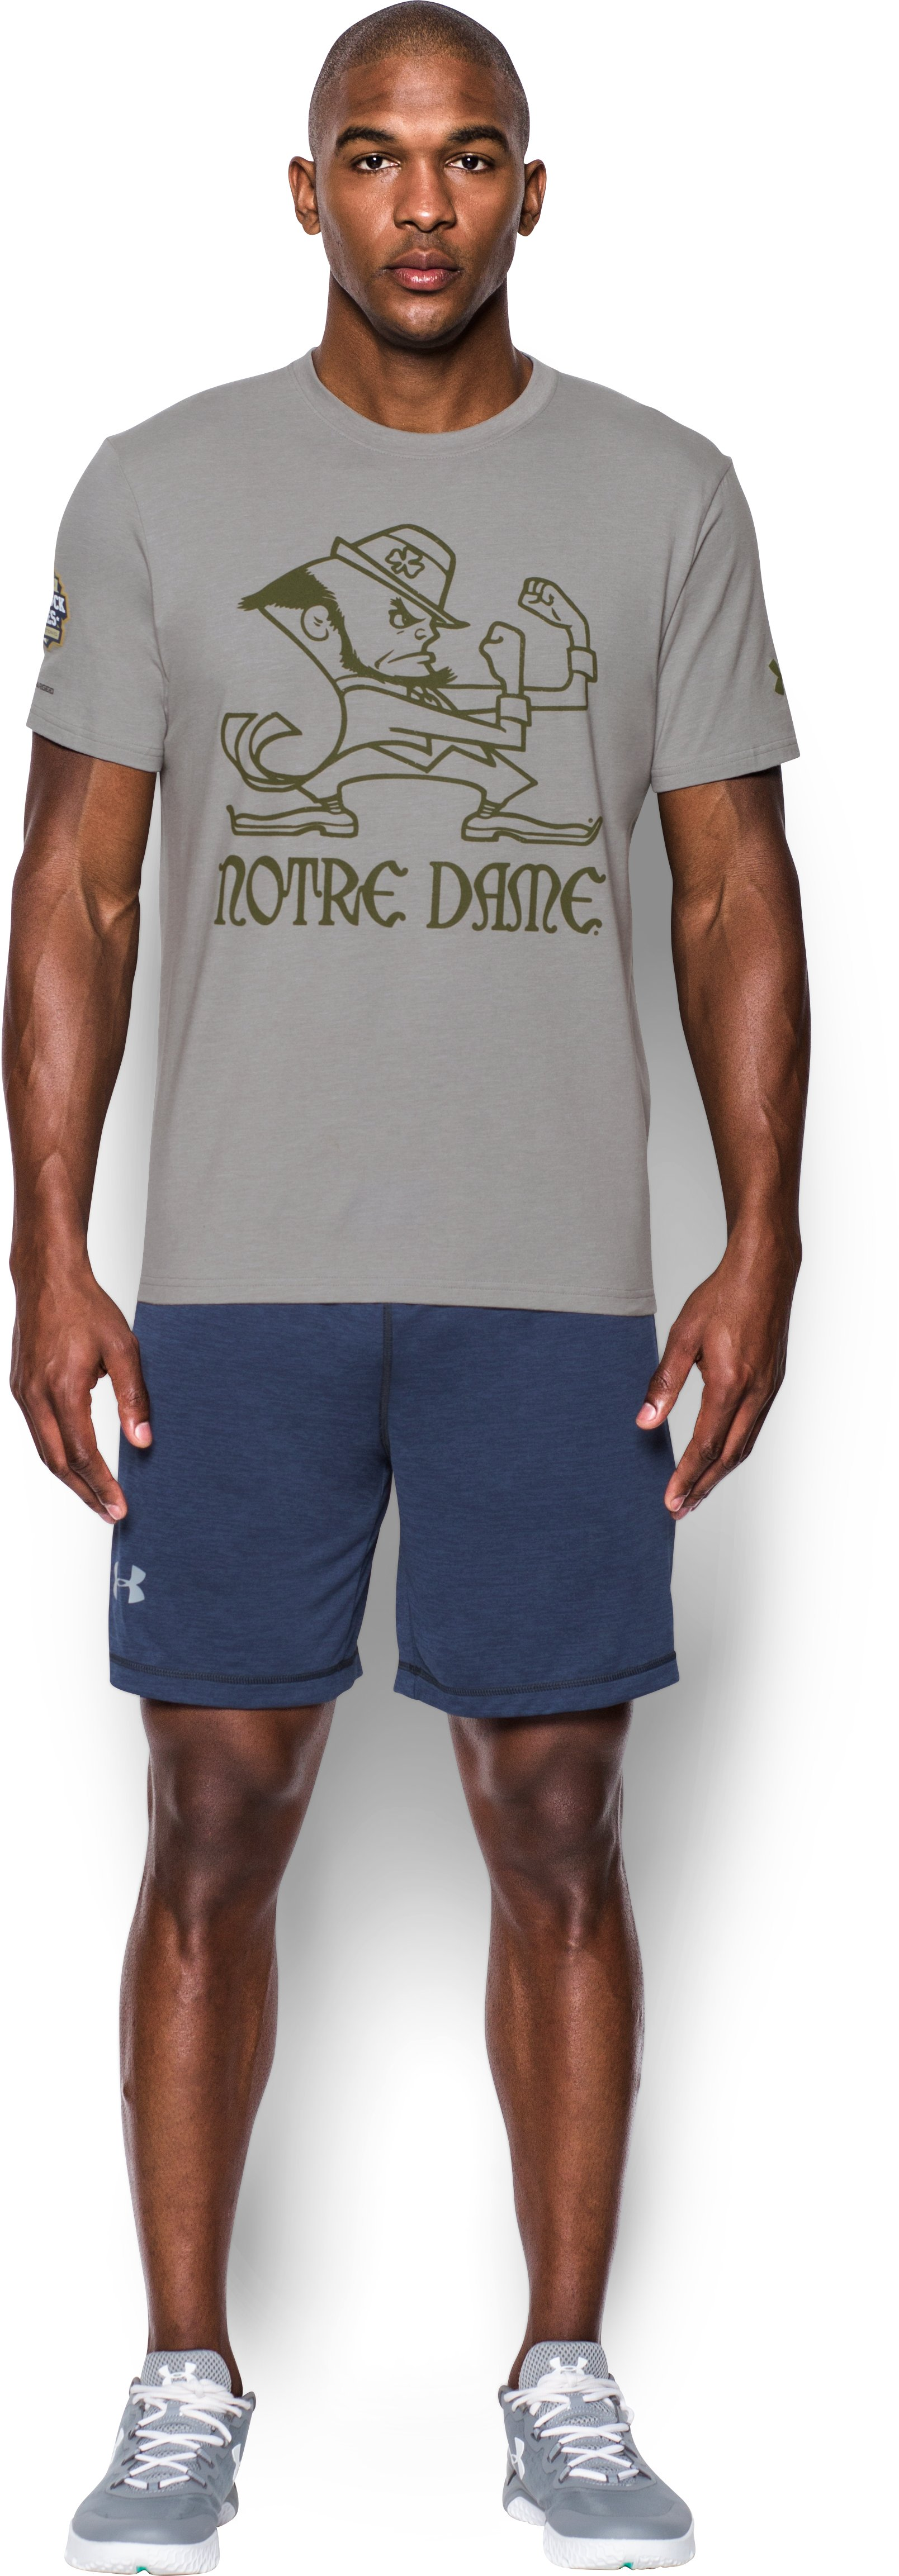 Men's Notre Dame UA Leprechaun T-Shirt, True Gray Heather, Front